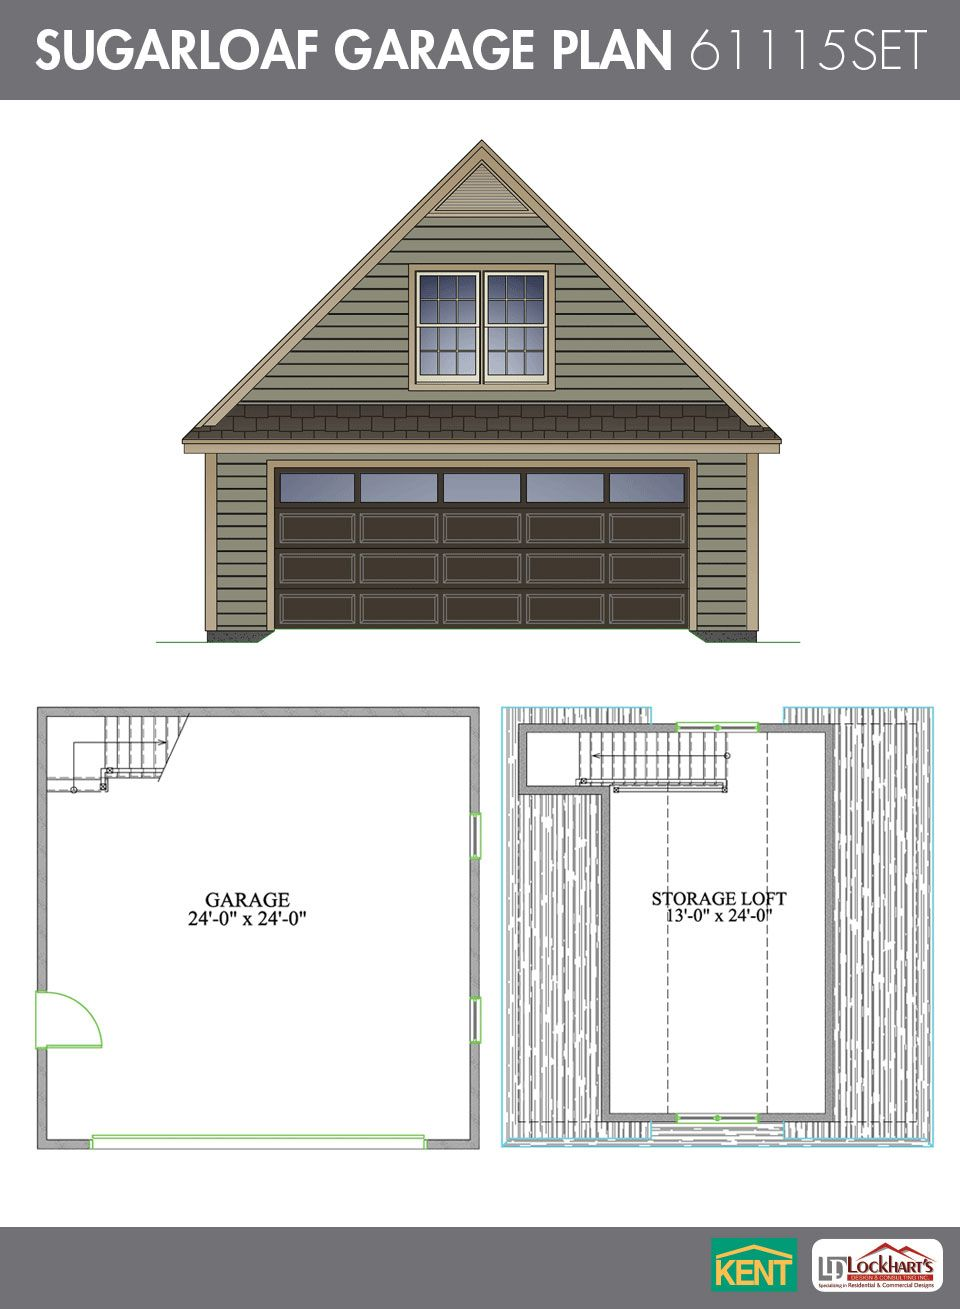 Sugarloaf garage plan 26 39 x 28 39 2 car garage 378 sq ft for 4 car garage square footage